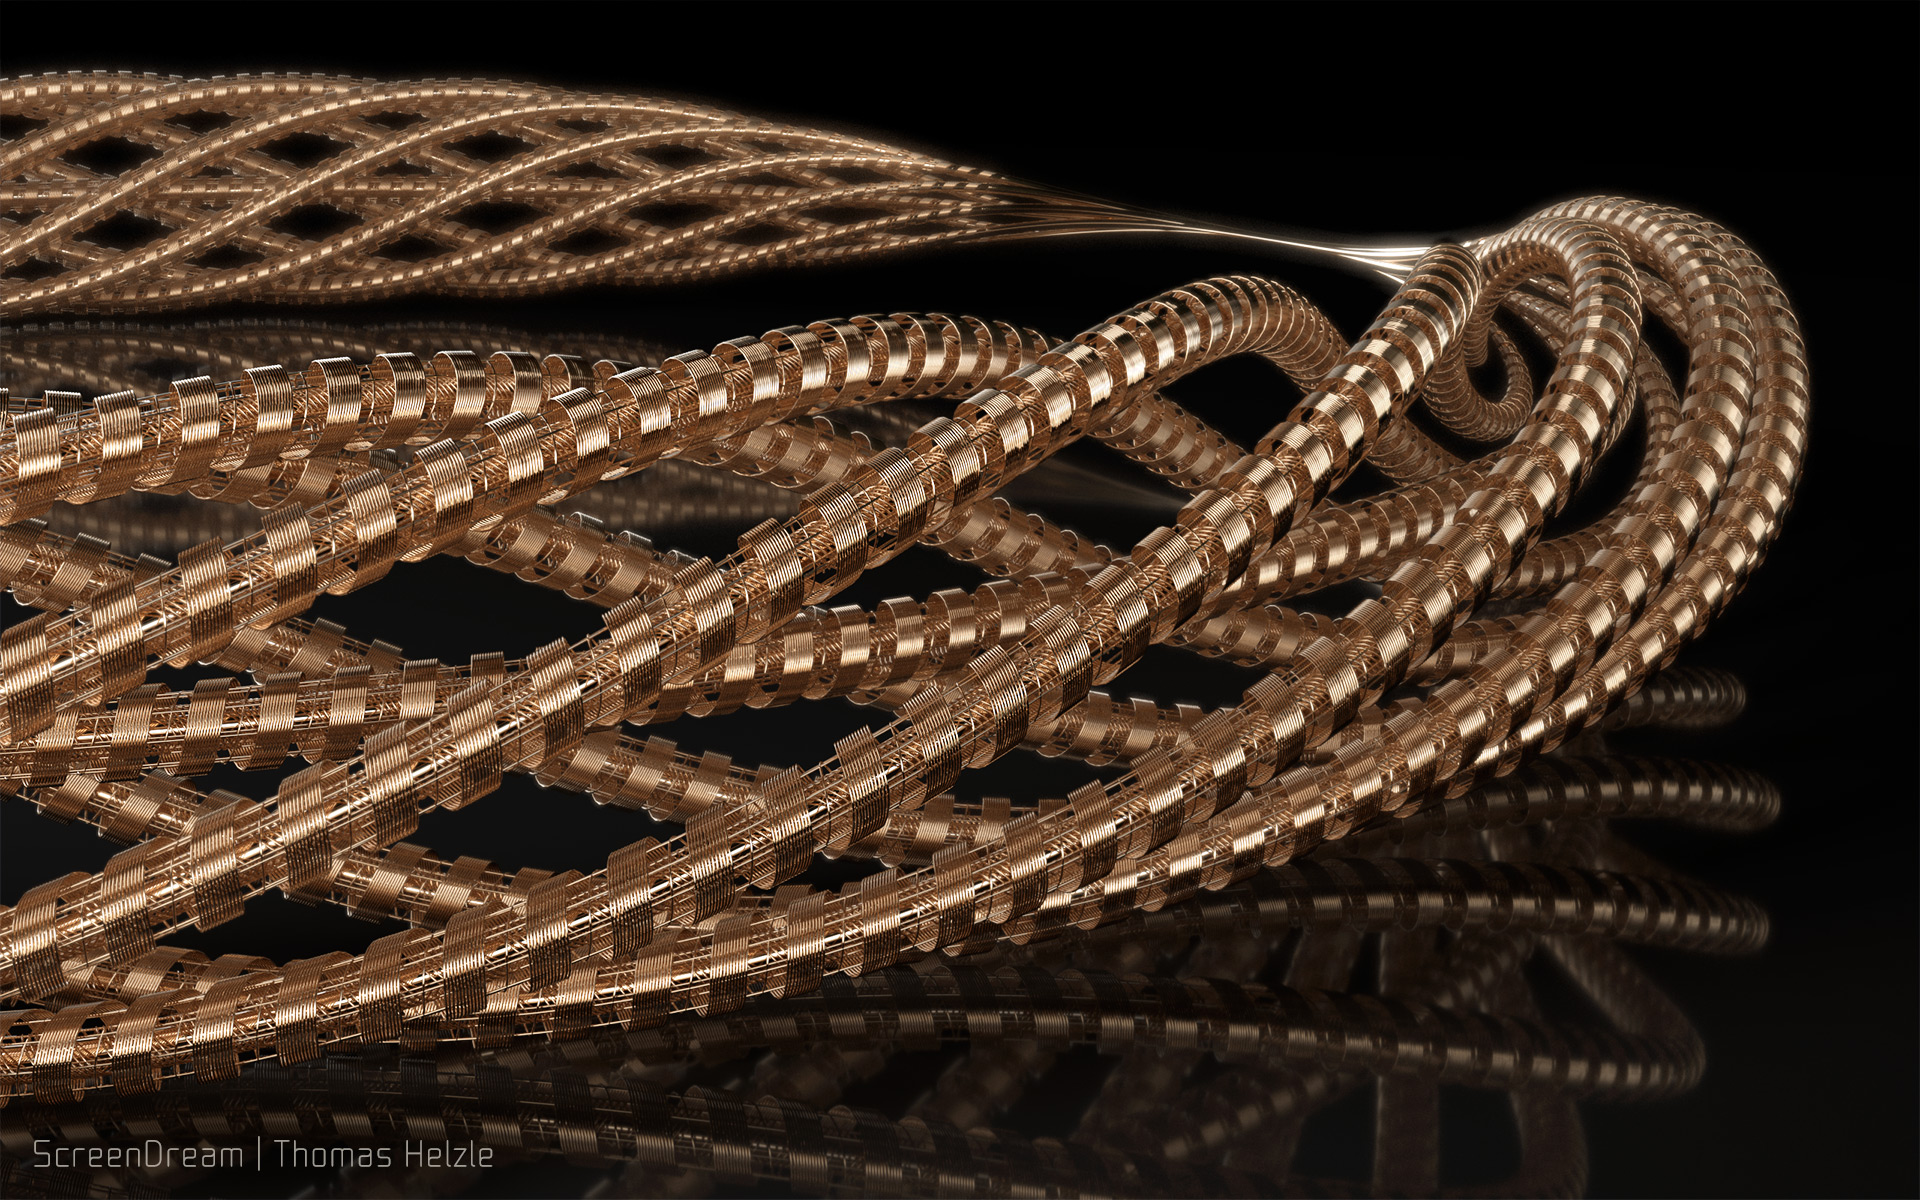 A series of images of wound wires, created in SideFX Houdini